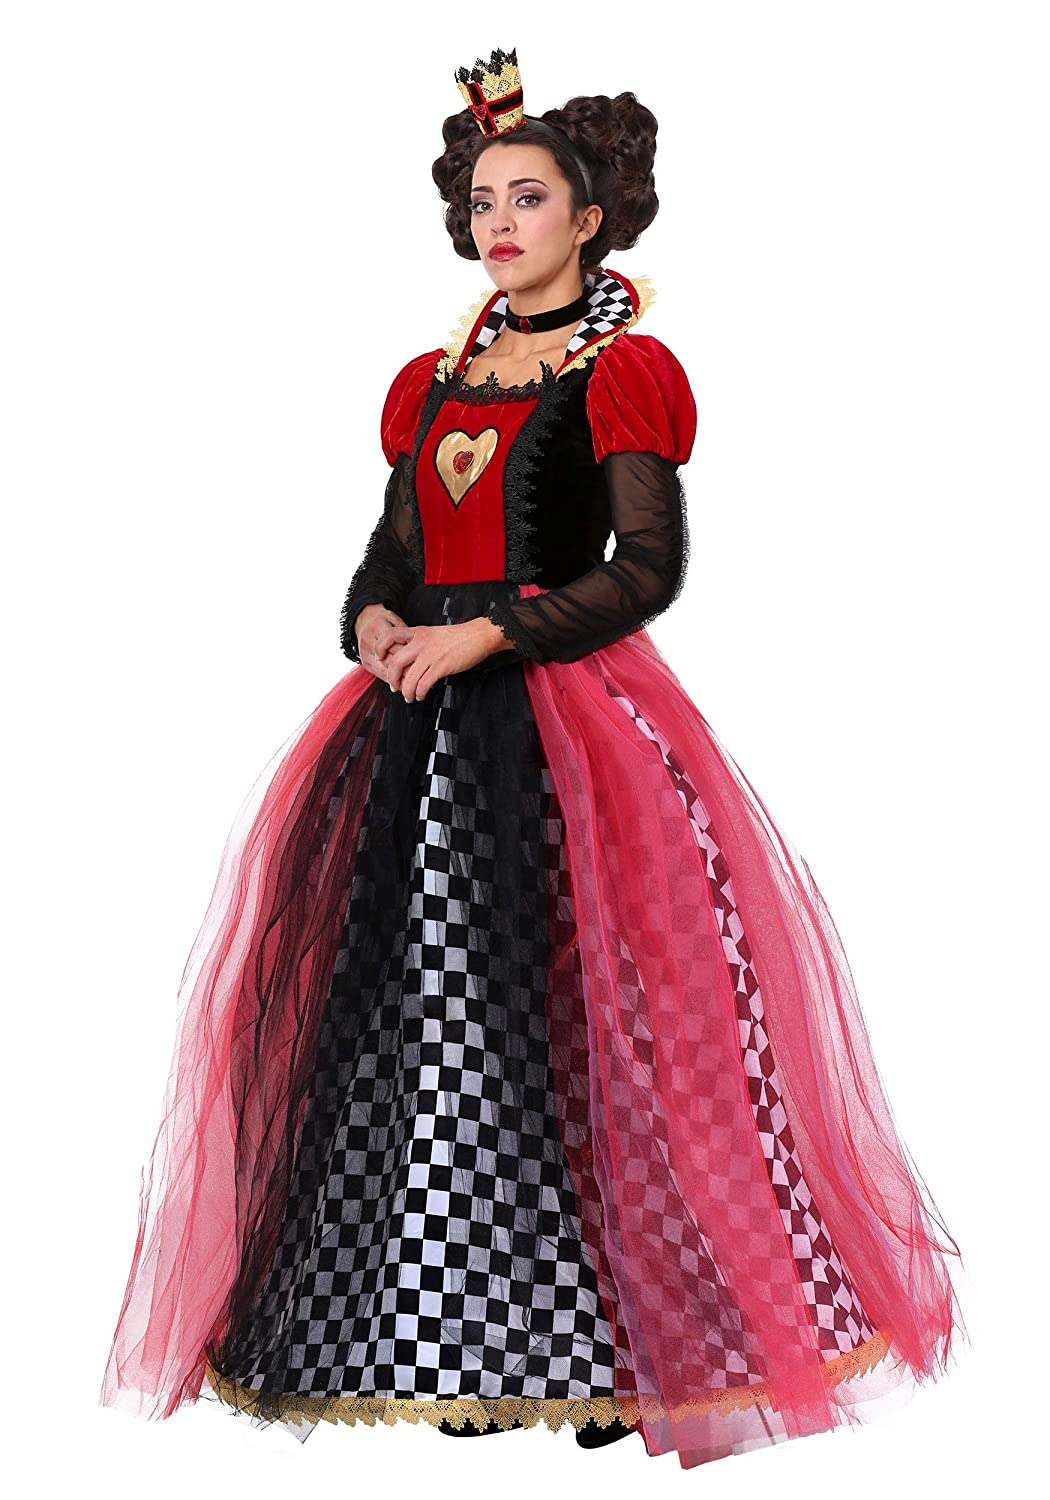 Damens's Ravishing Queen of Hearts Fancy Dress Costume Small